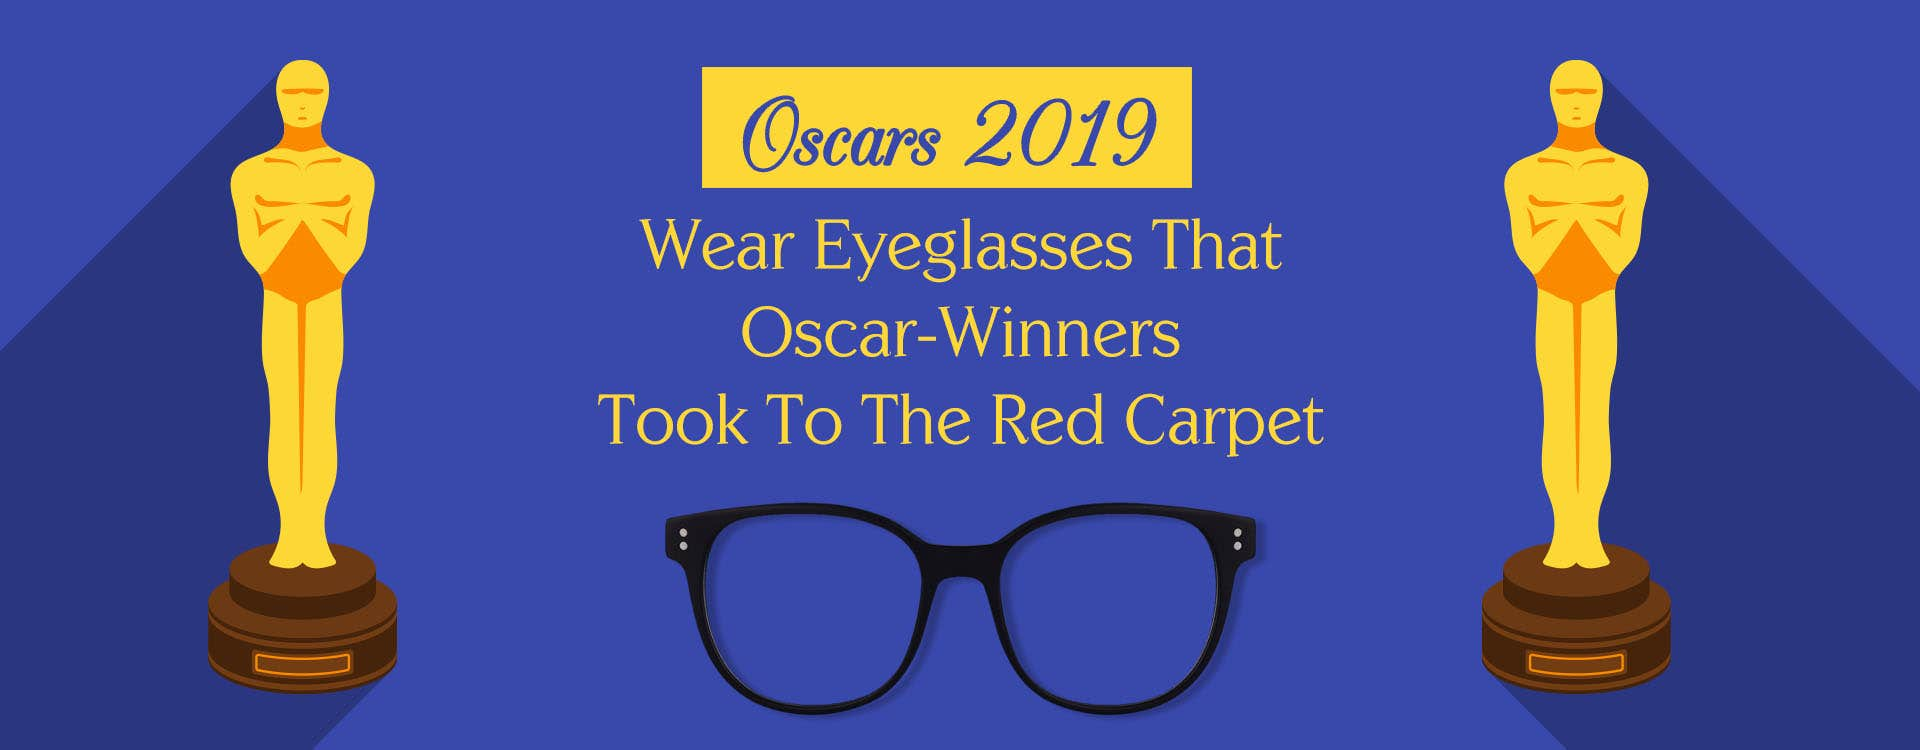 Oscar 2019: Wear Eyeglasses That Oscar-Winners Took To The Red Carpet